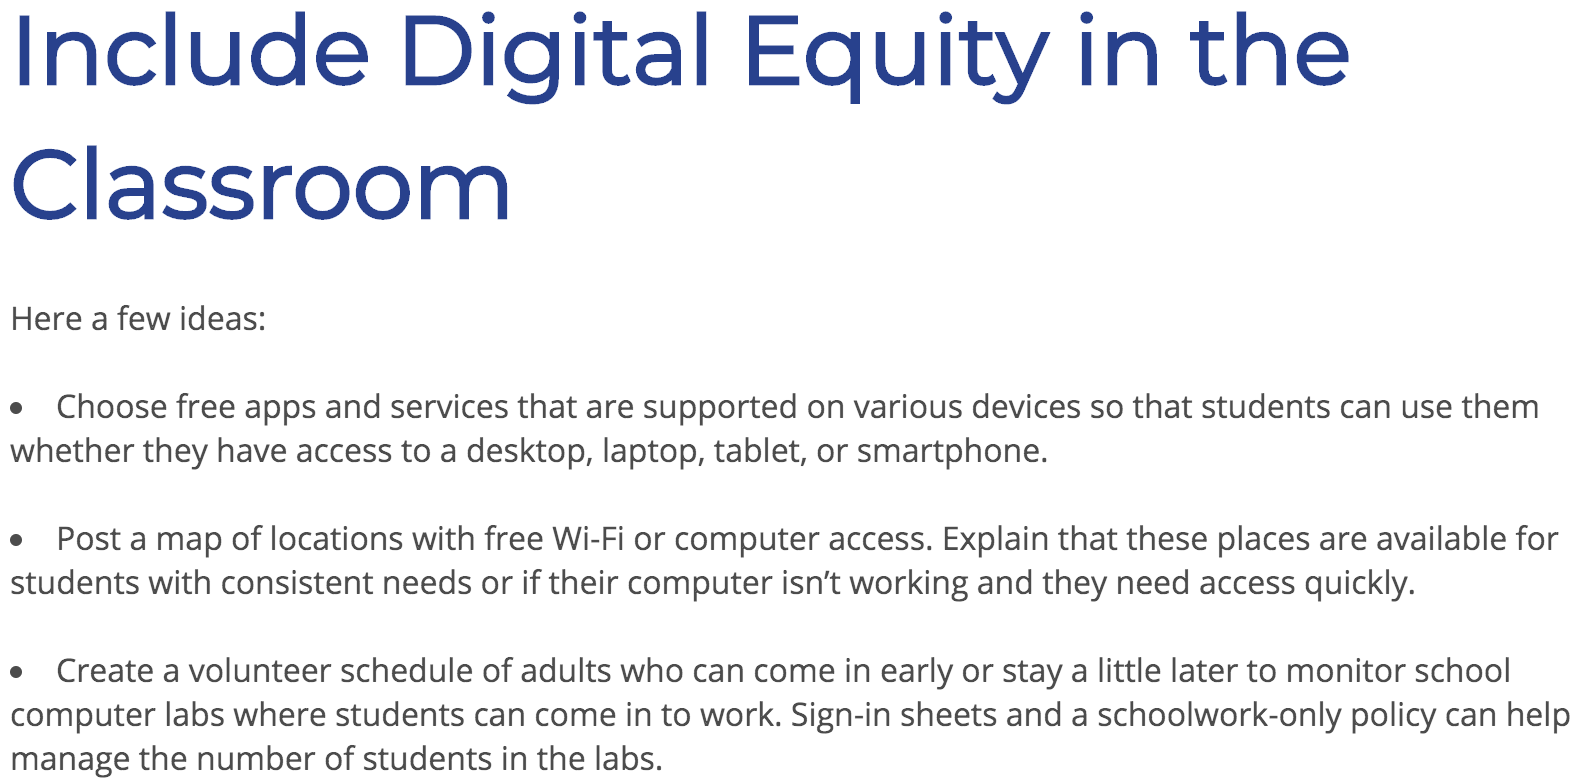 Snapshot of Digital Equity in Classroom